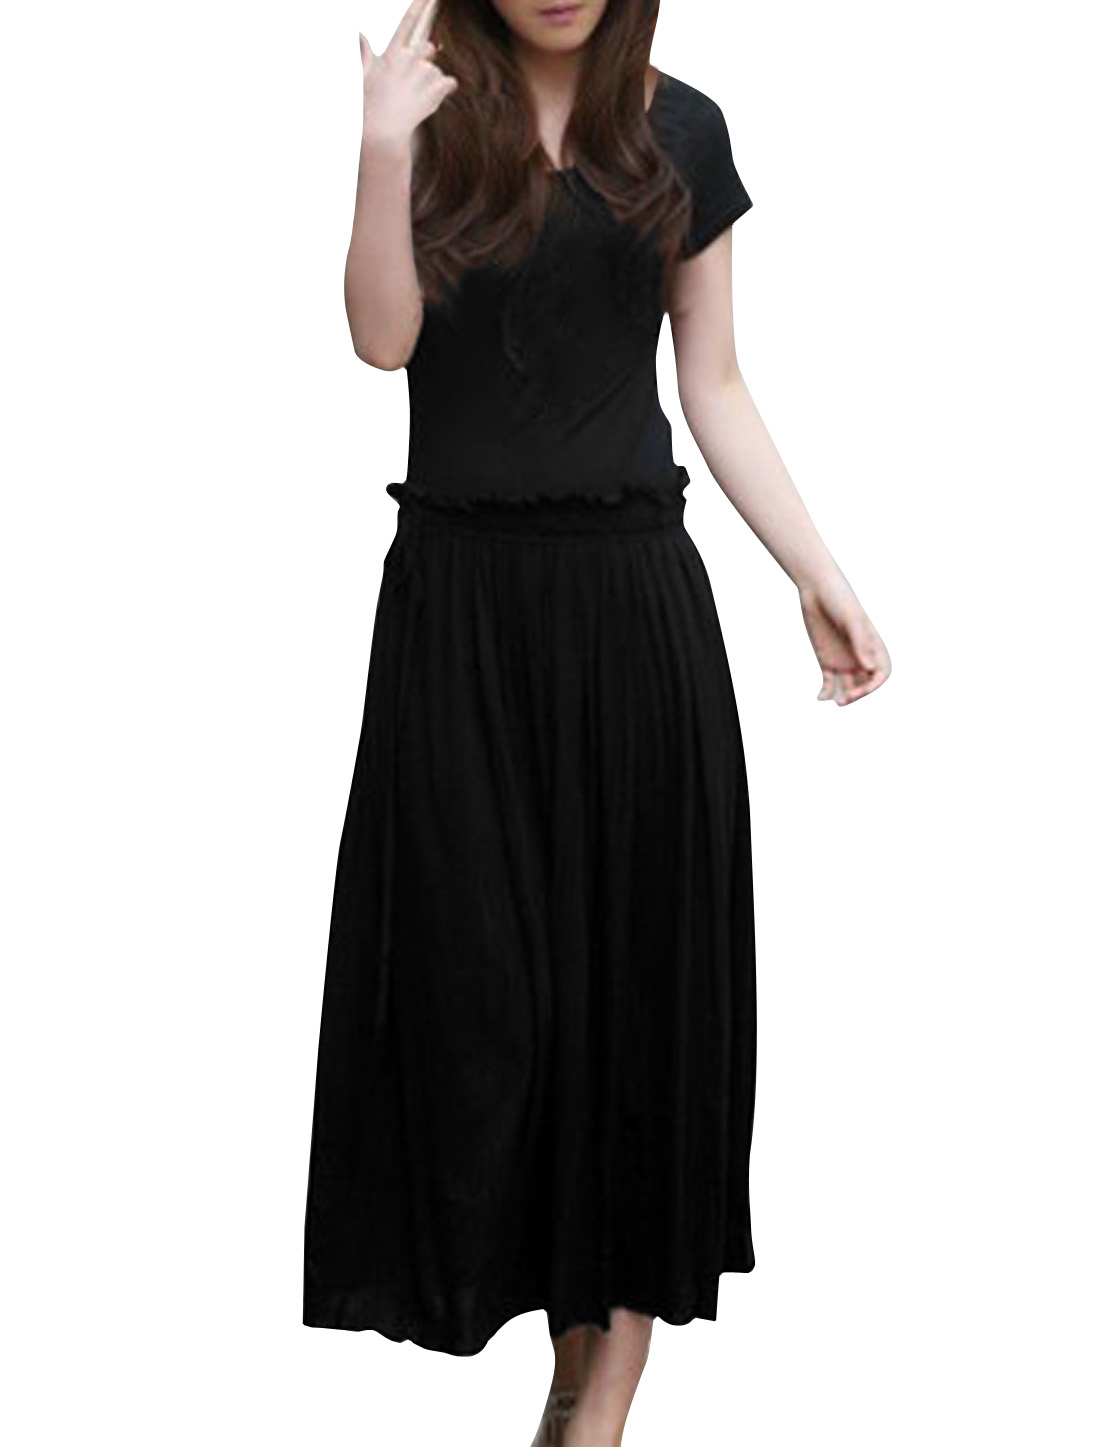 Pullover Scoop Neck Short Sleeve Drawstring Waist Black Dress for Lady XL